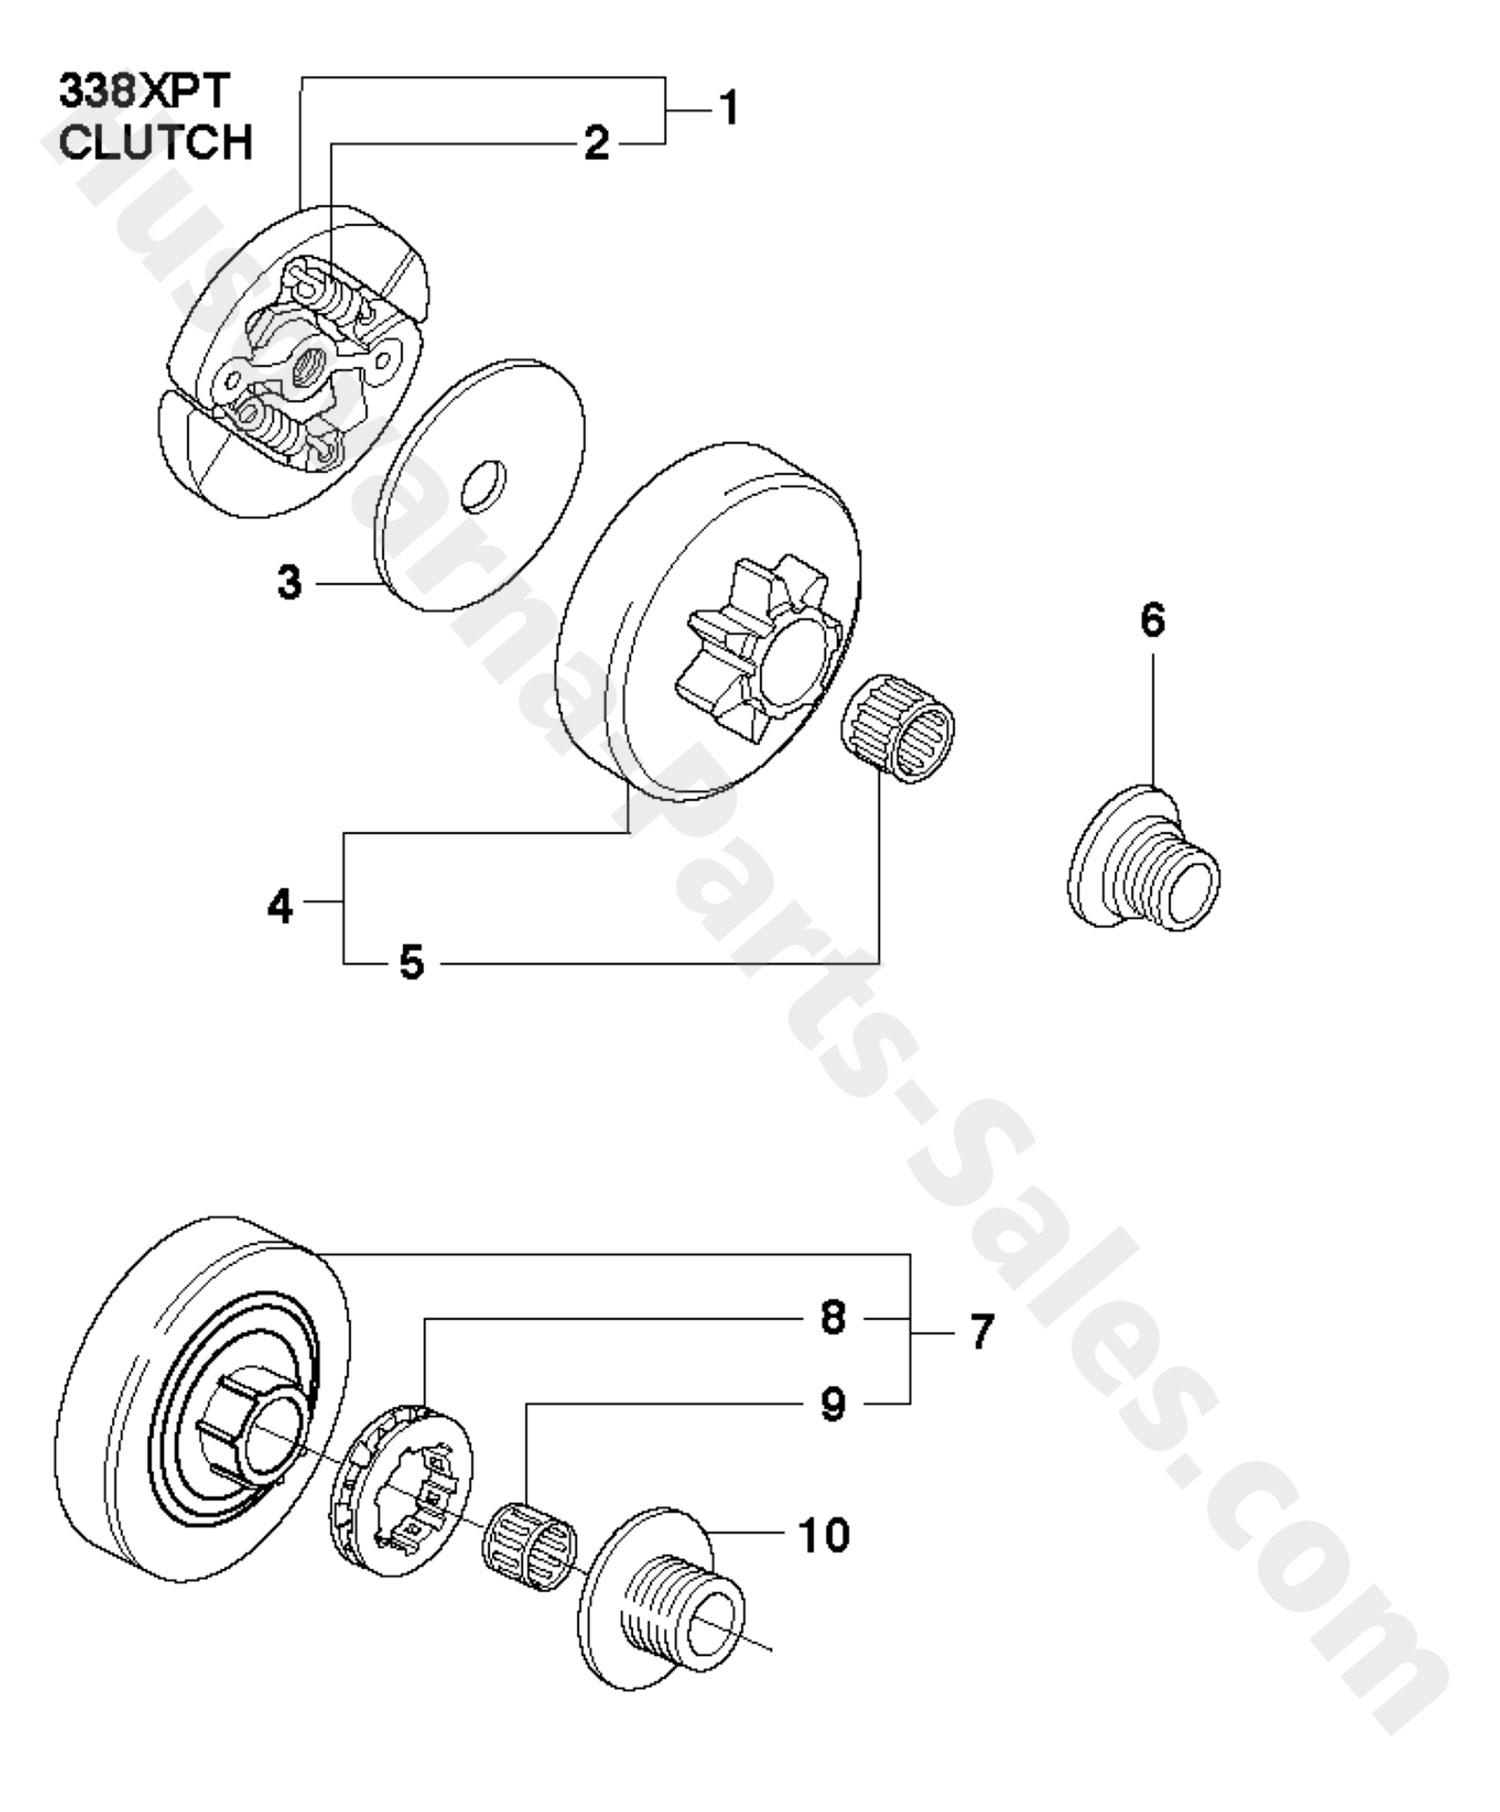 338XPT Husqvarna ProfessionalChain Saw Clutch Parts